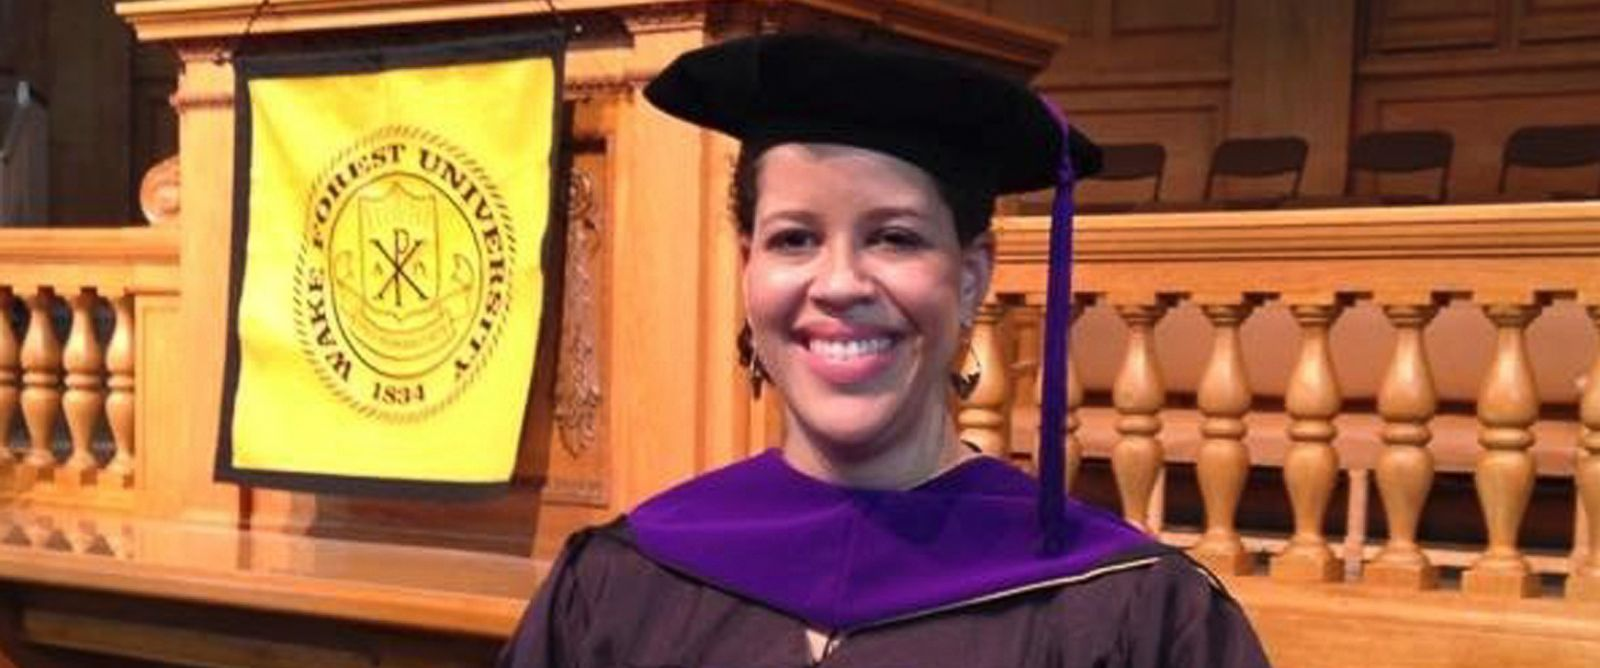 PHOTO: Catherine Booher, who graduated from Wake Forest University School of Law in Winston-Salem, N.C., in May 2014, is shown in this image provided by Mike Booher.